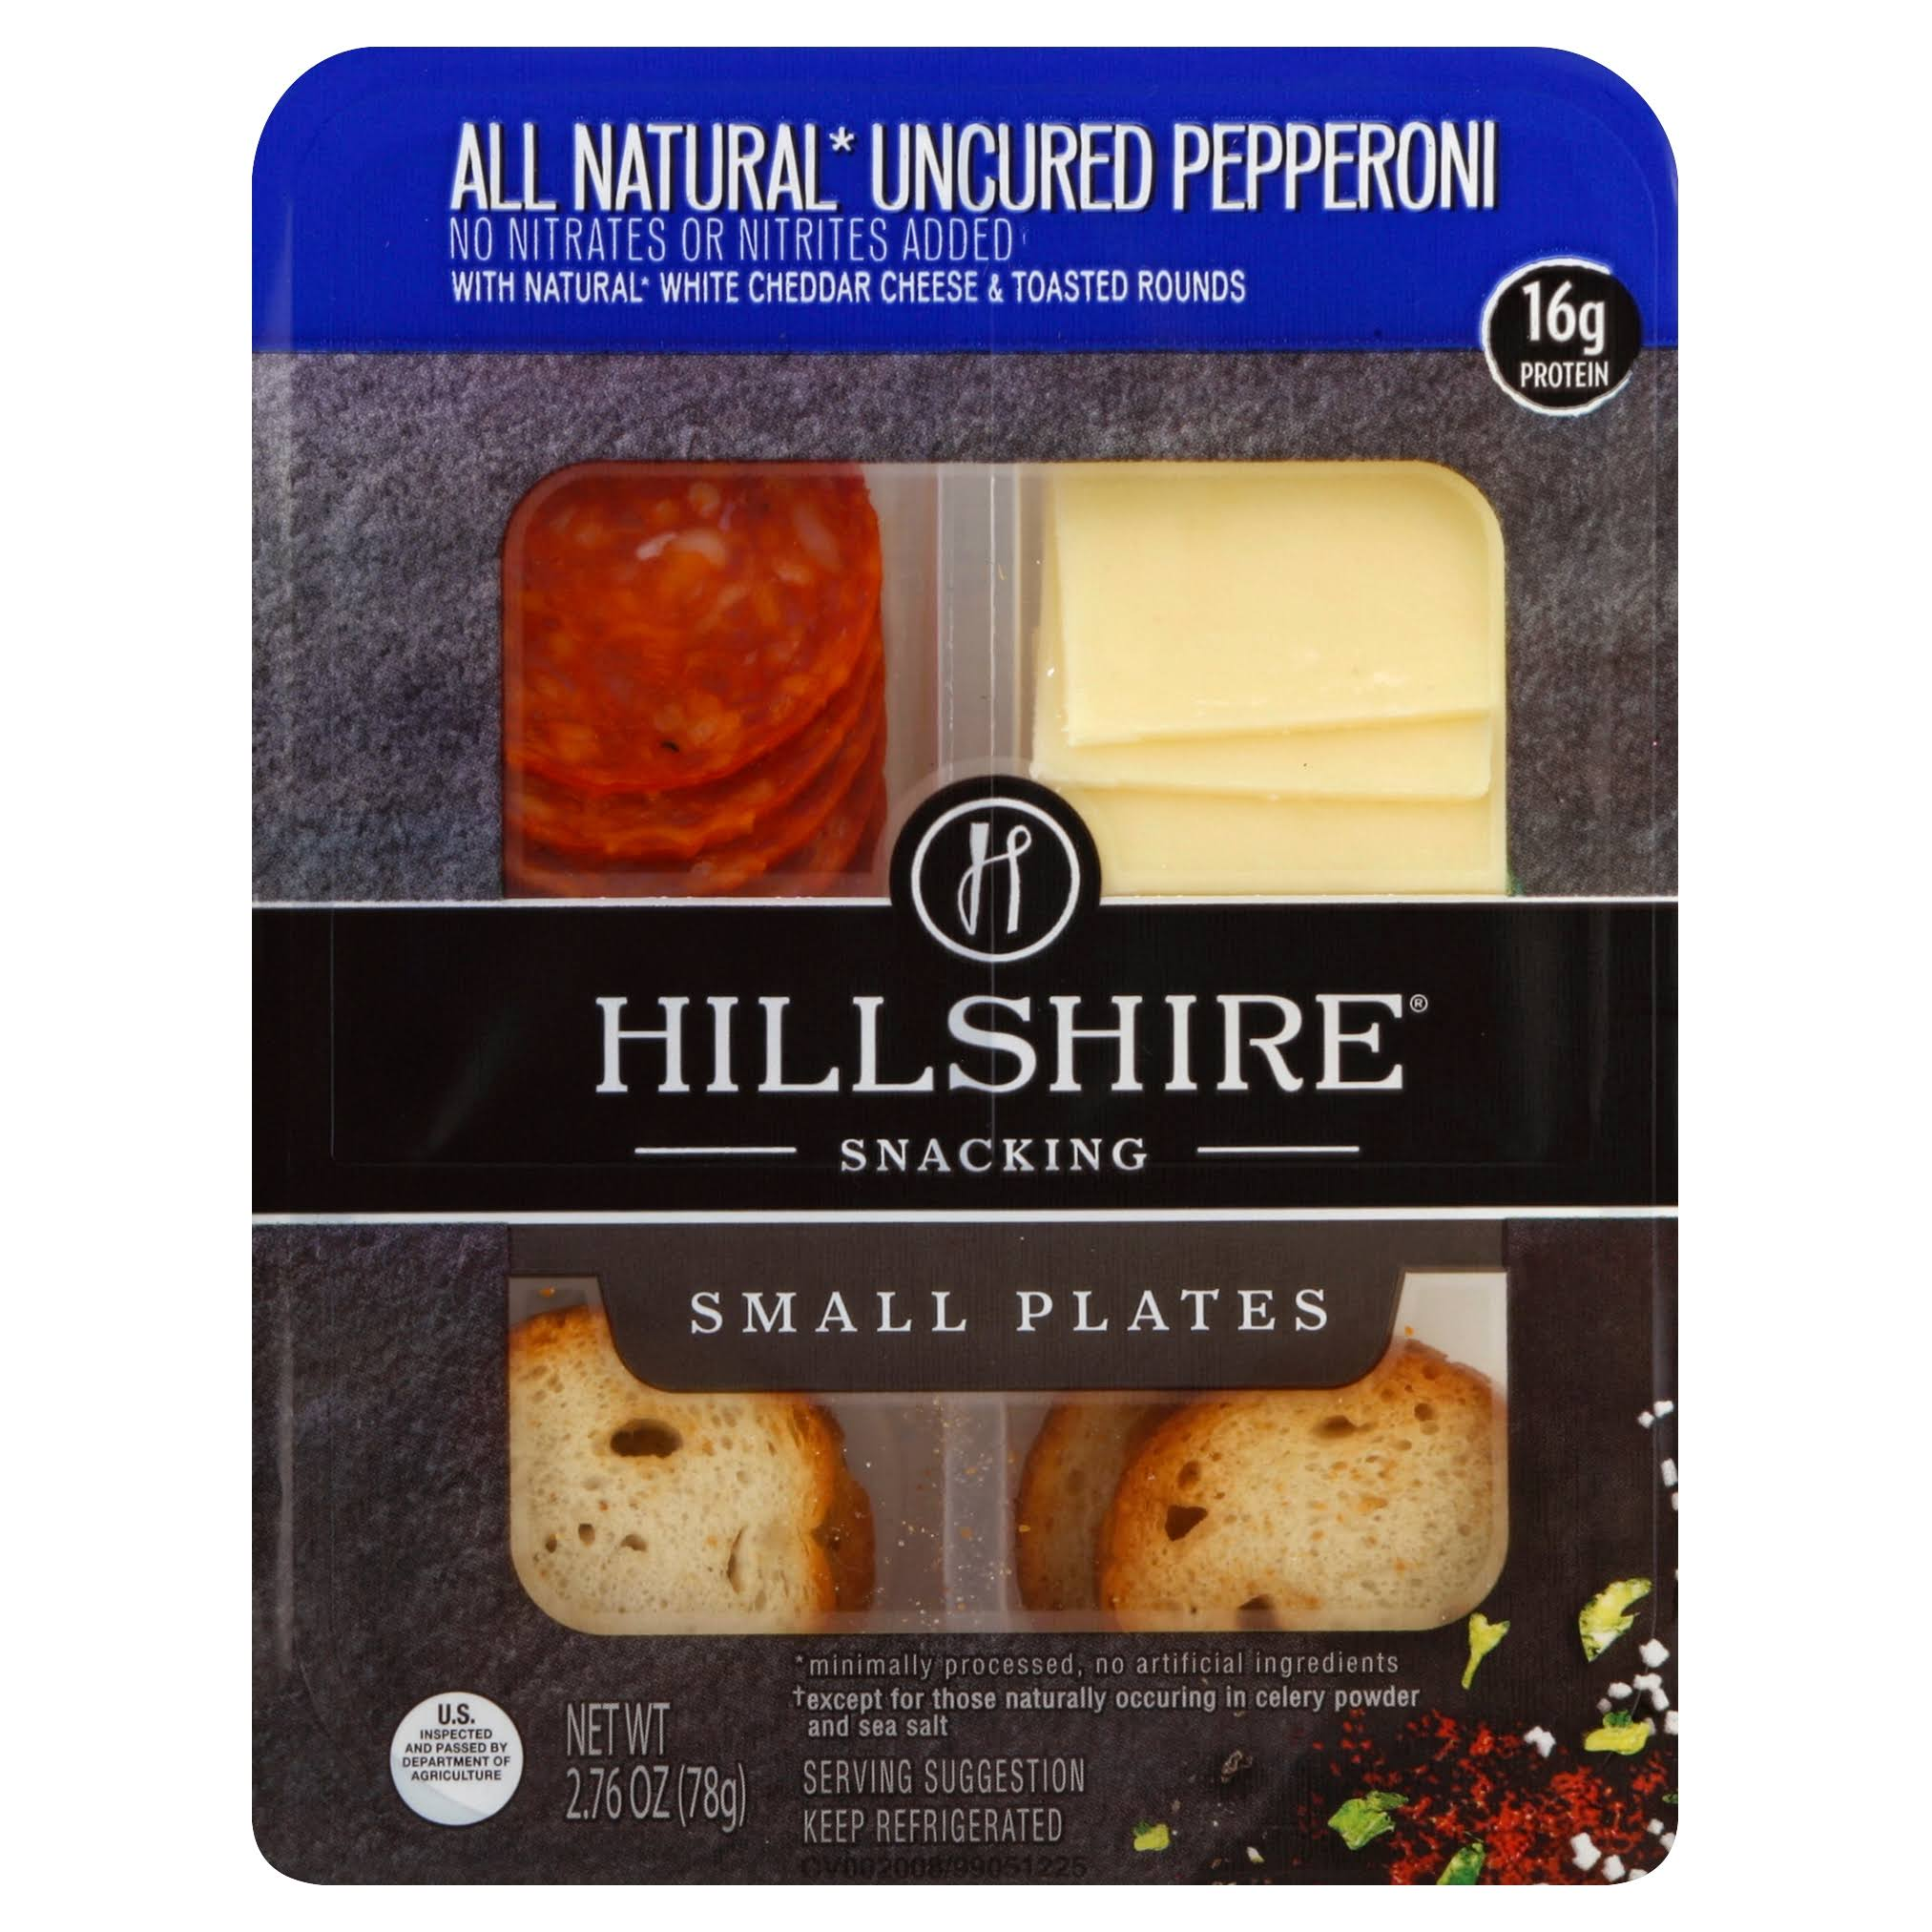 Hillshire Snacking All Natural Uncured Pepperoni with Natural White Cheddar Cheese Snack Plate - 2.76oz